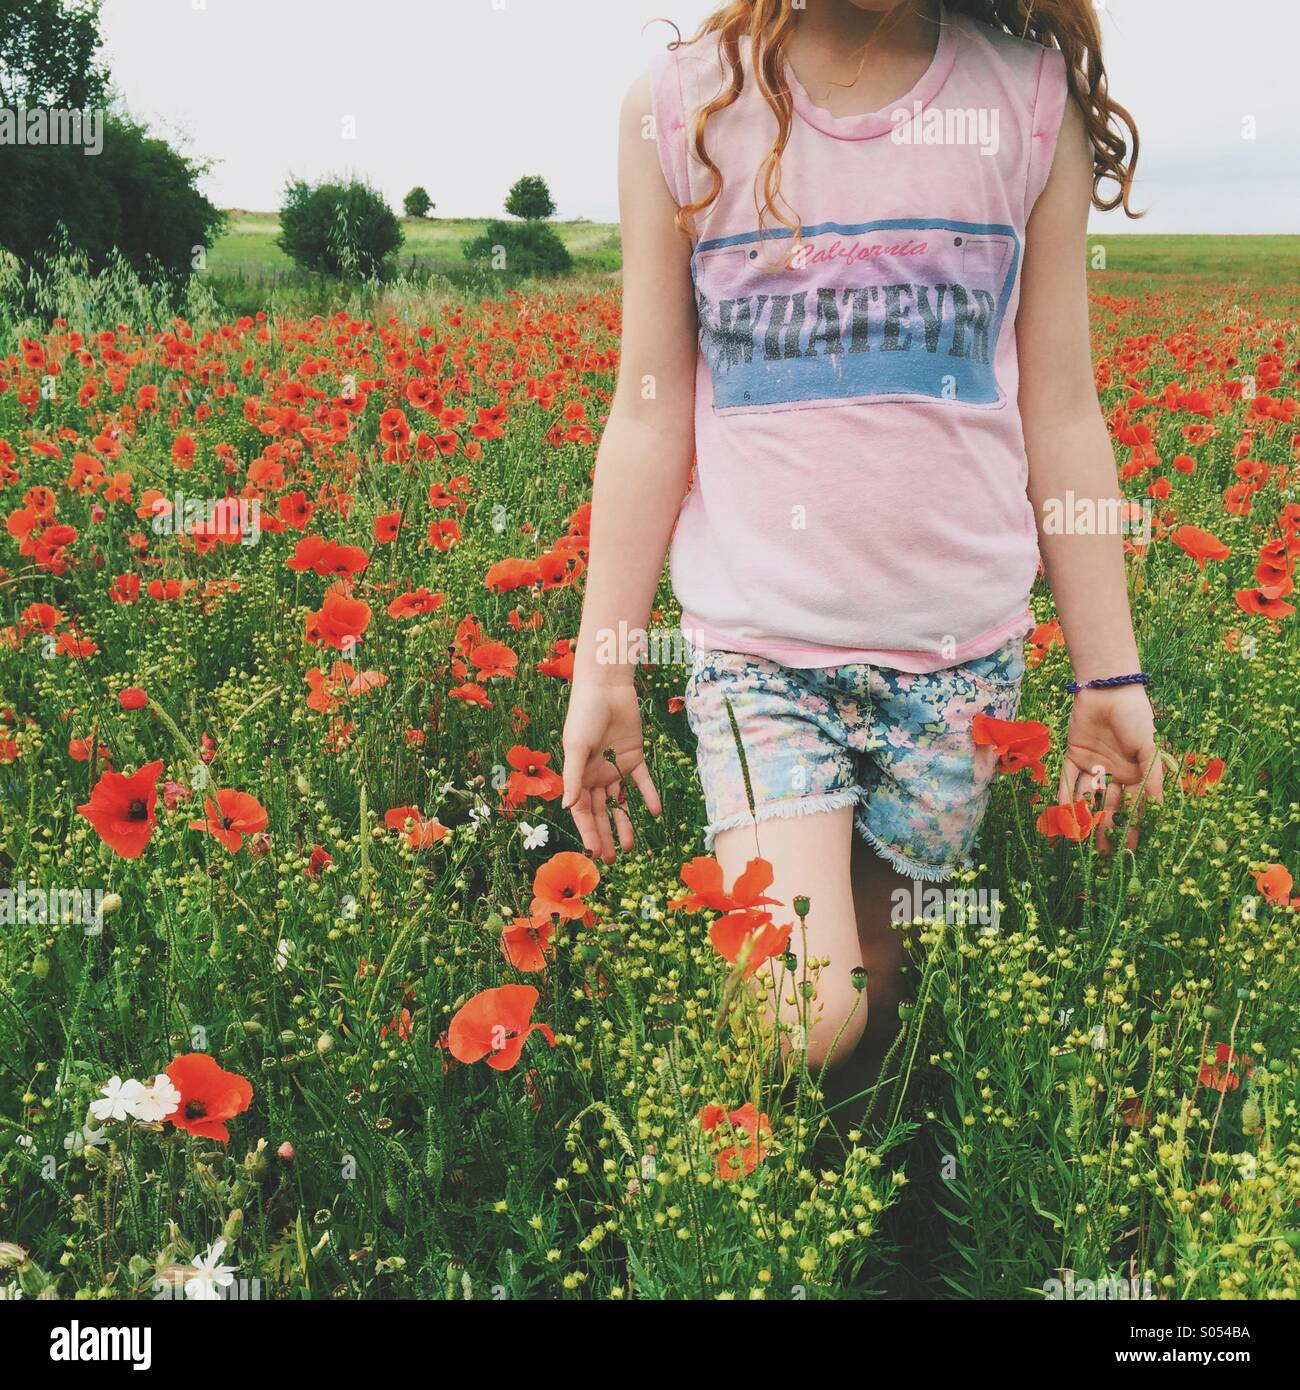 Fille qui marche à travers un champ de coquelicots Photo Stock